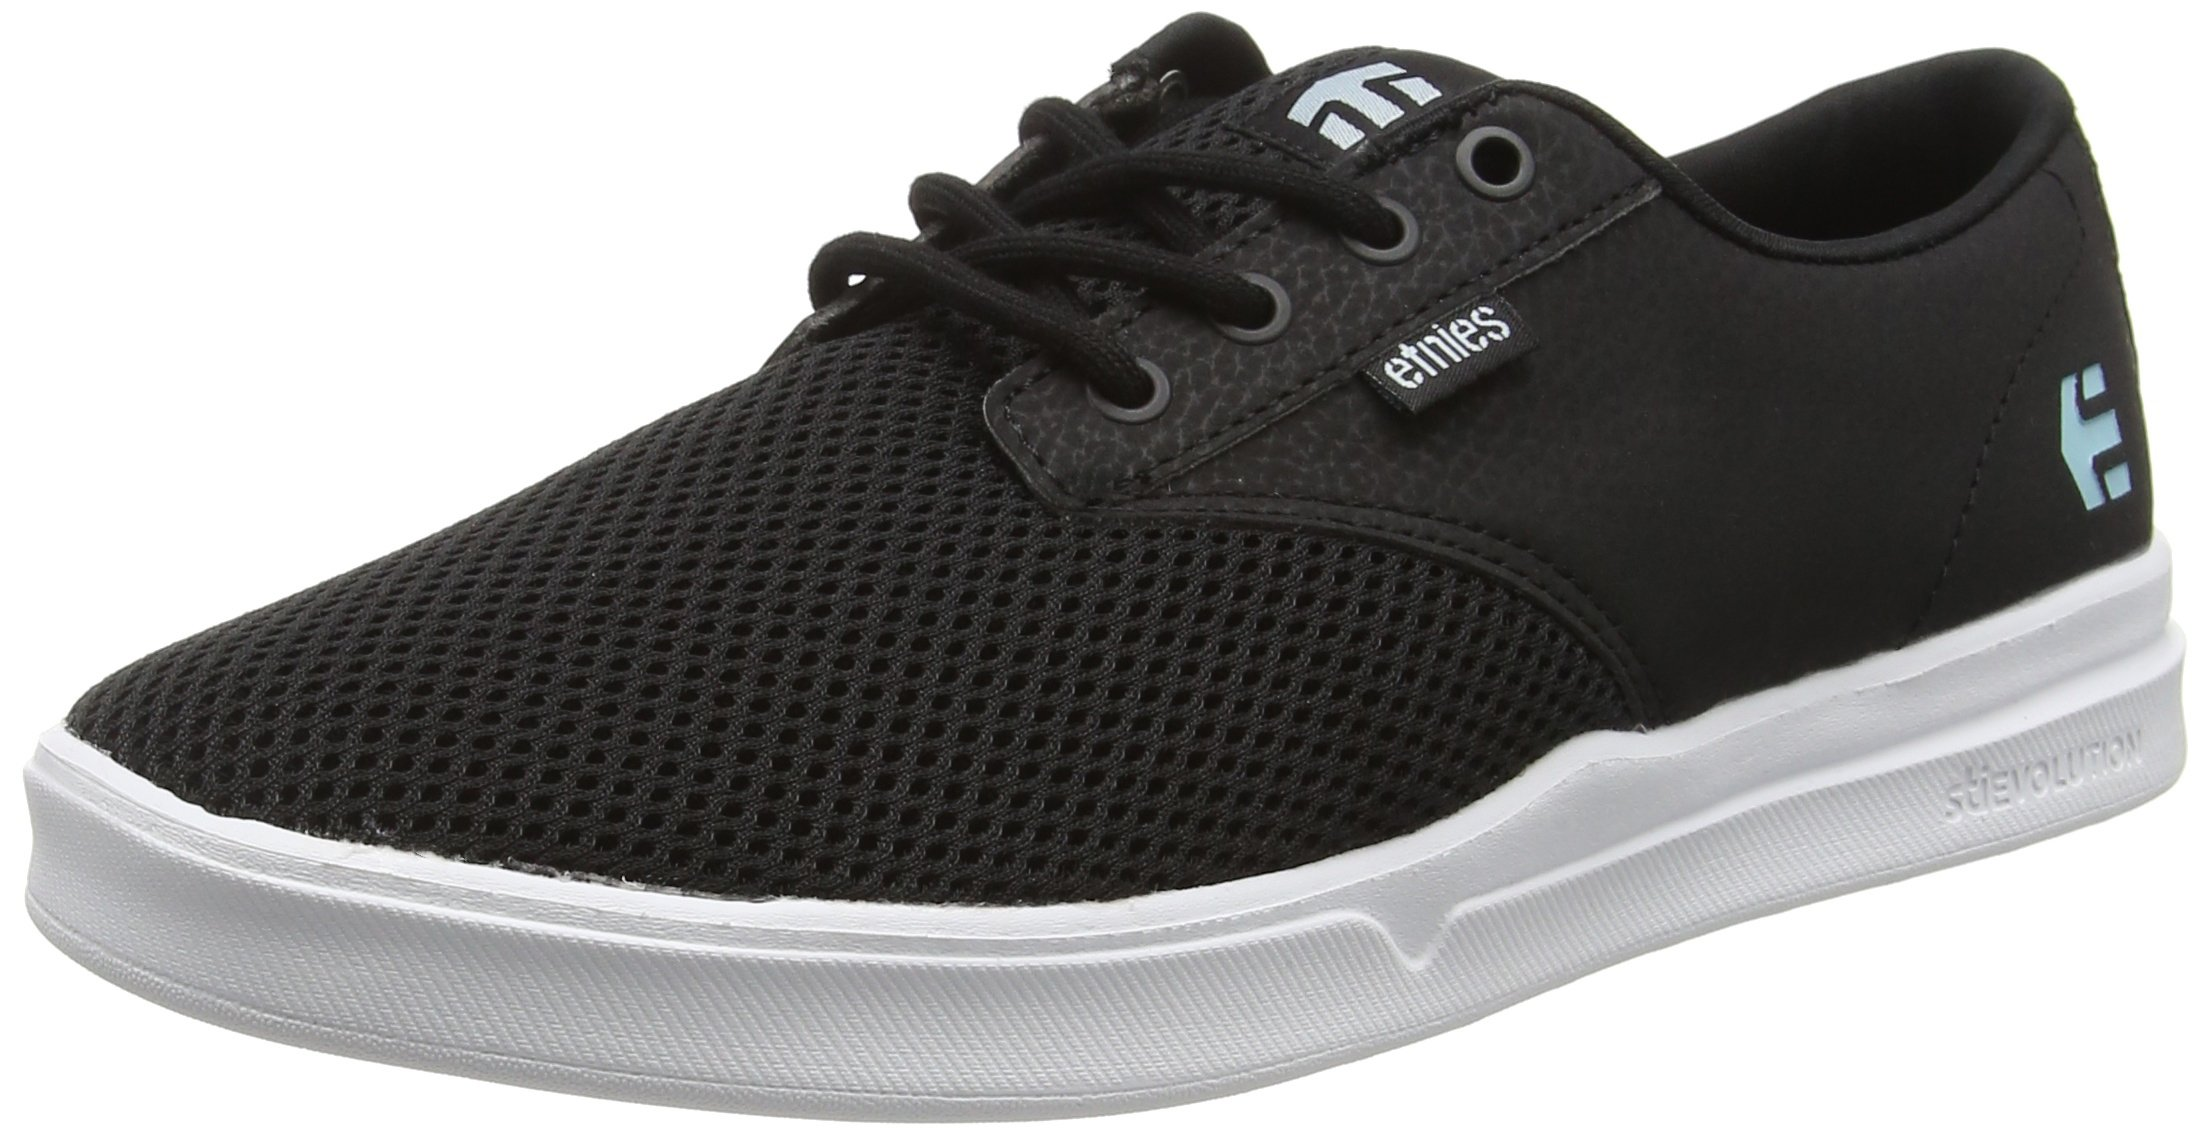 Etnies Women's Jameson SC W'S Skateboarding Shoe, Black/White, 7 M US by Etnies